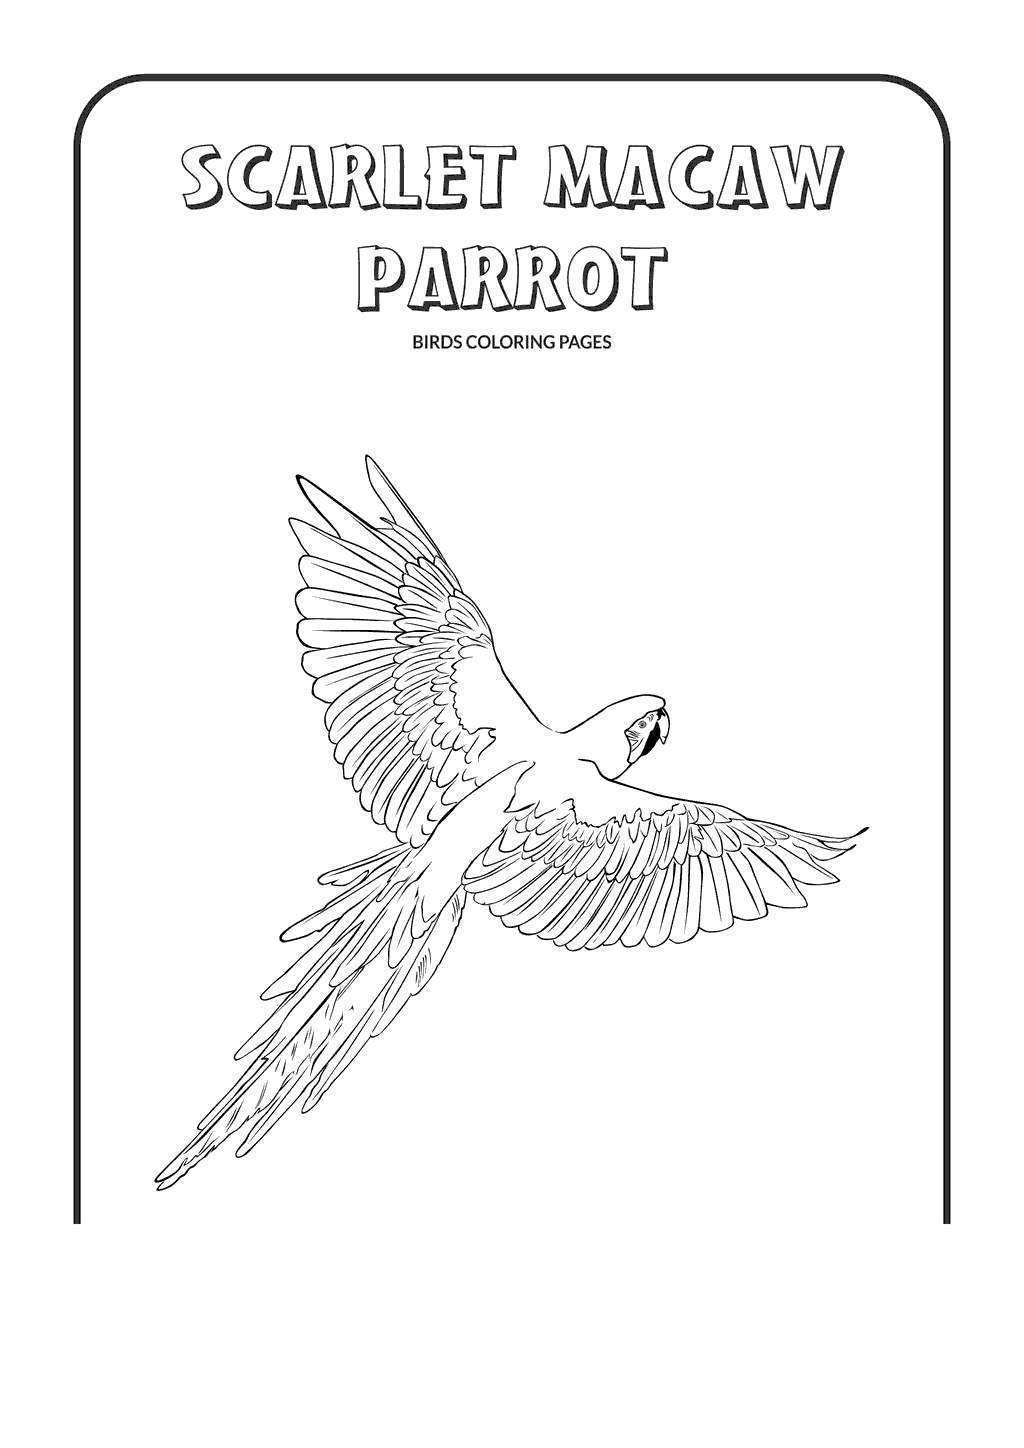 Free Macaw Coloring Pages Cool Scarlet printable